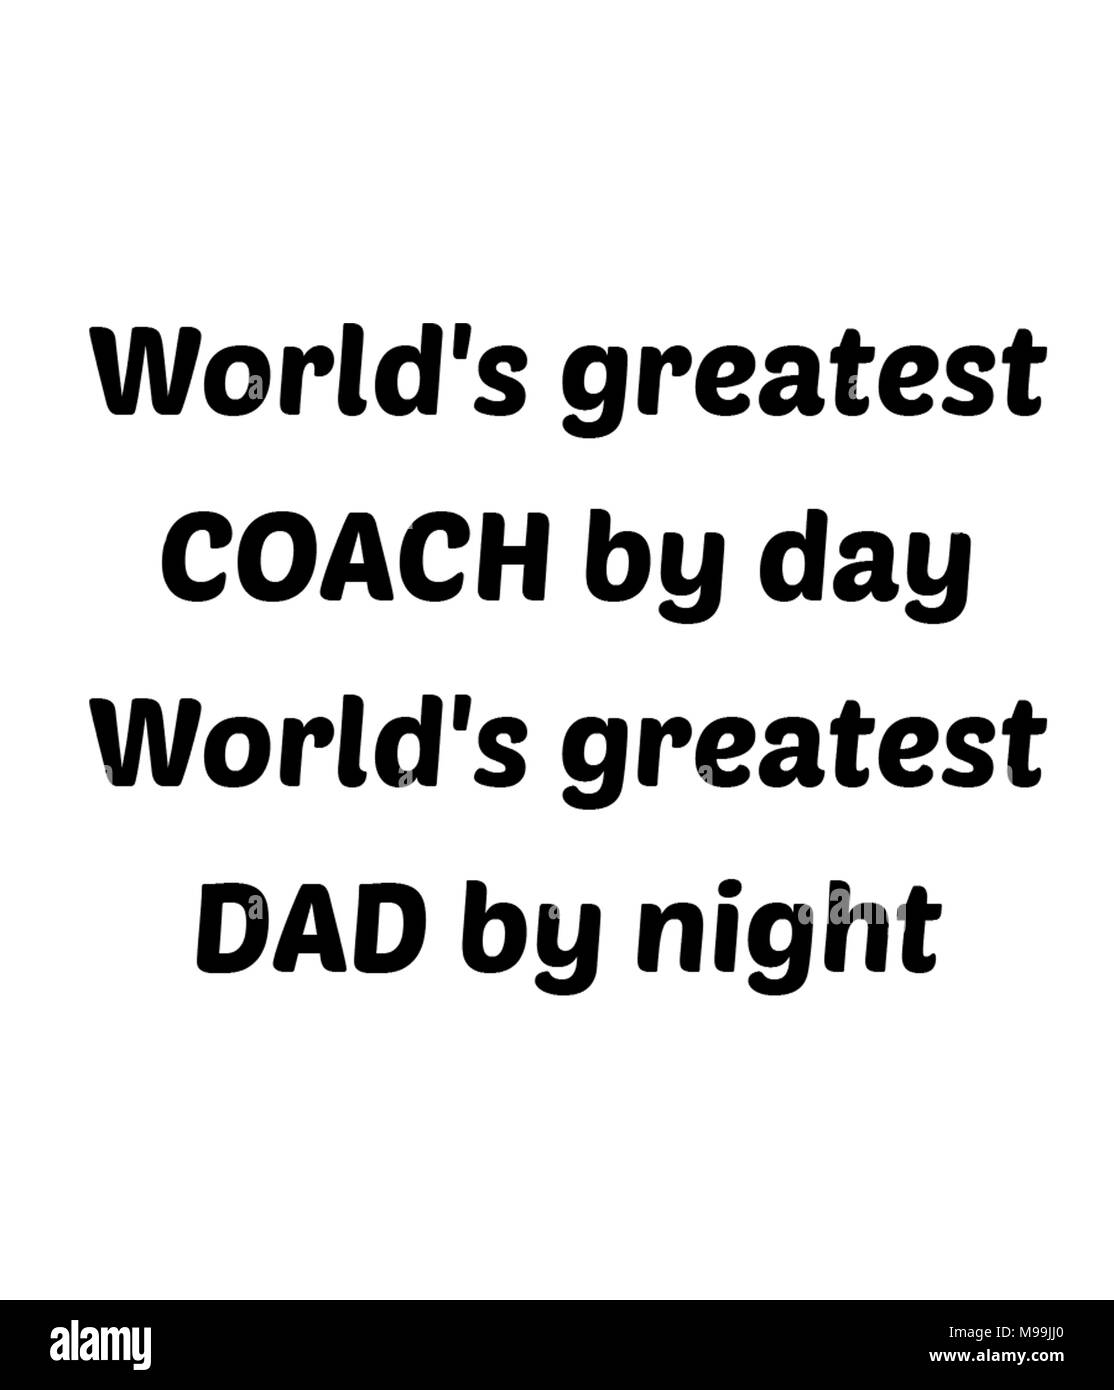 World's greatest COACH by day World's greatest DAD by night - Stock Image